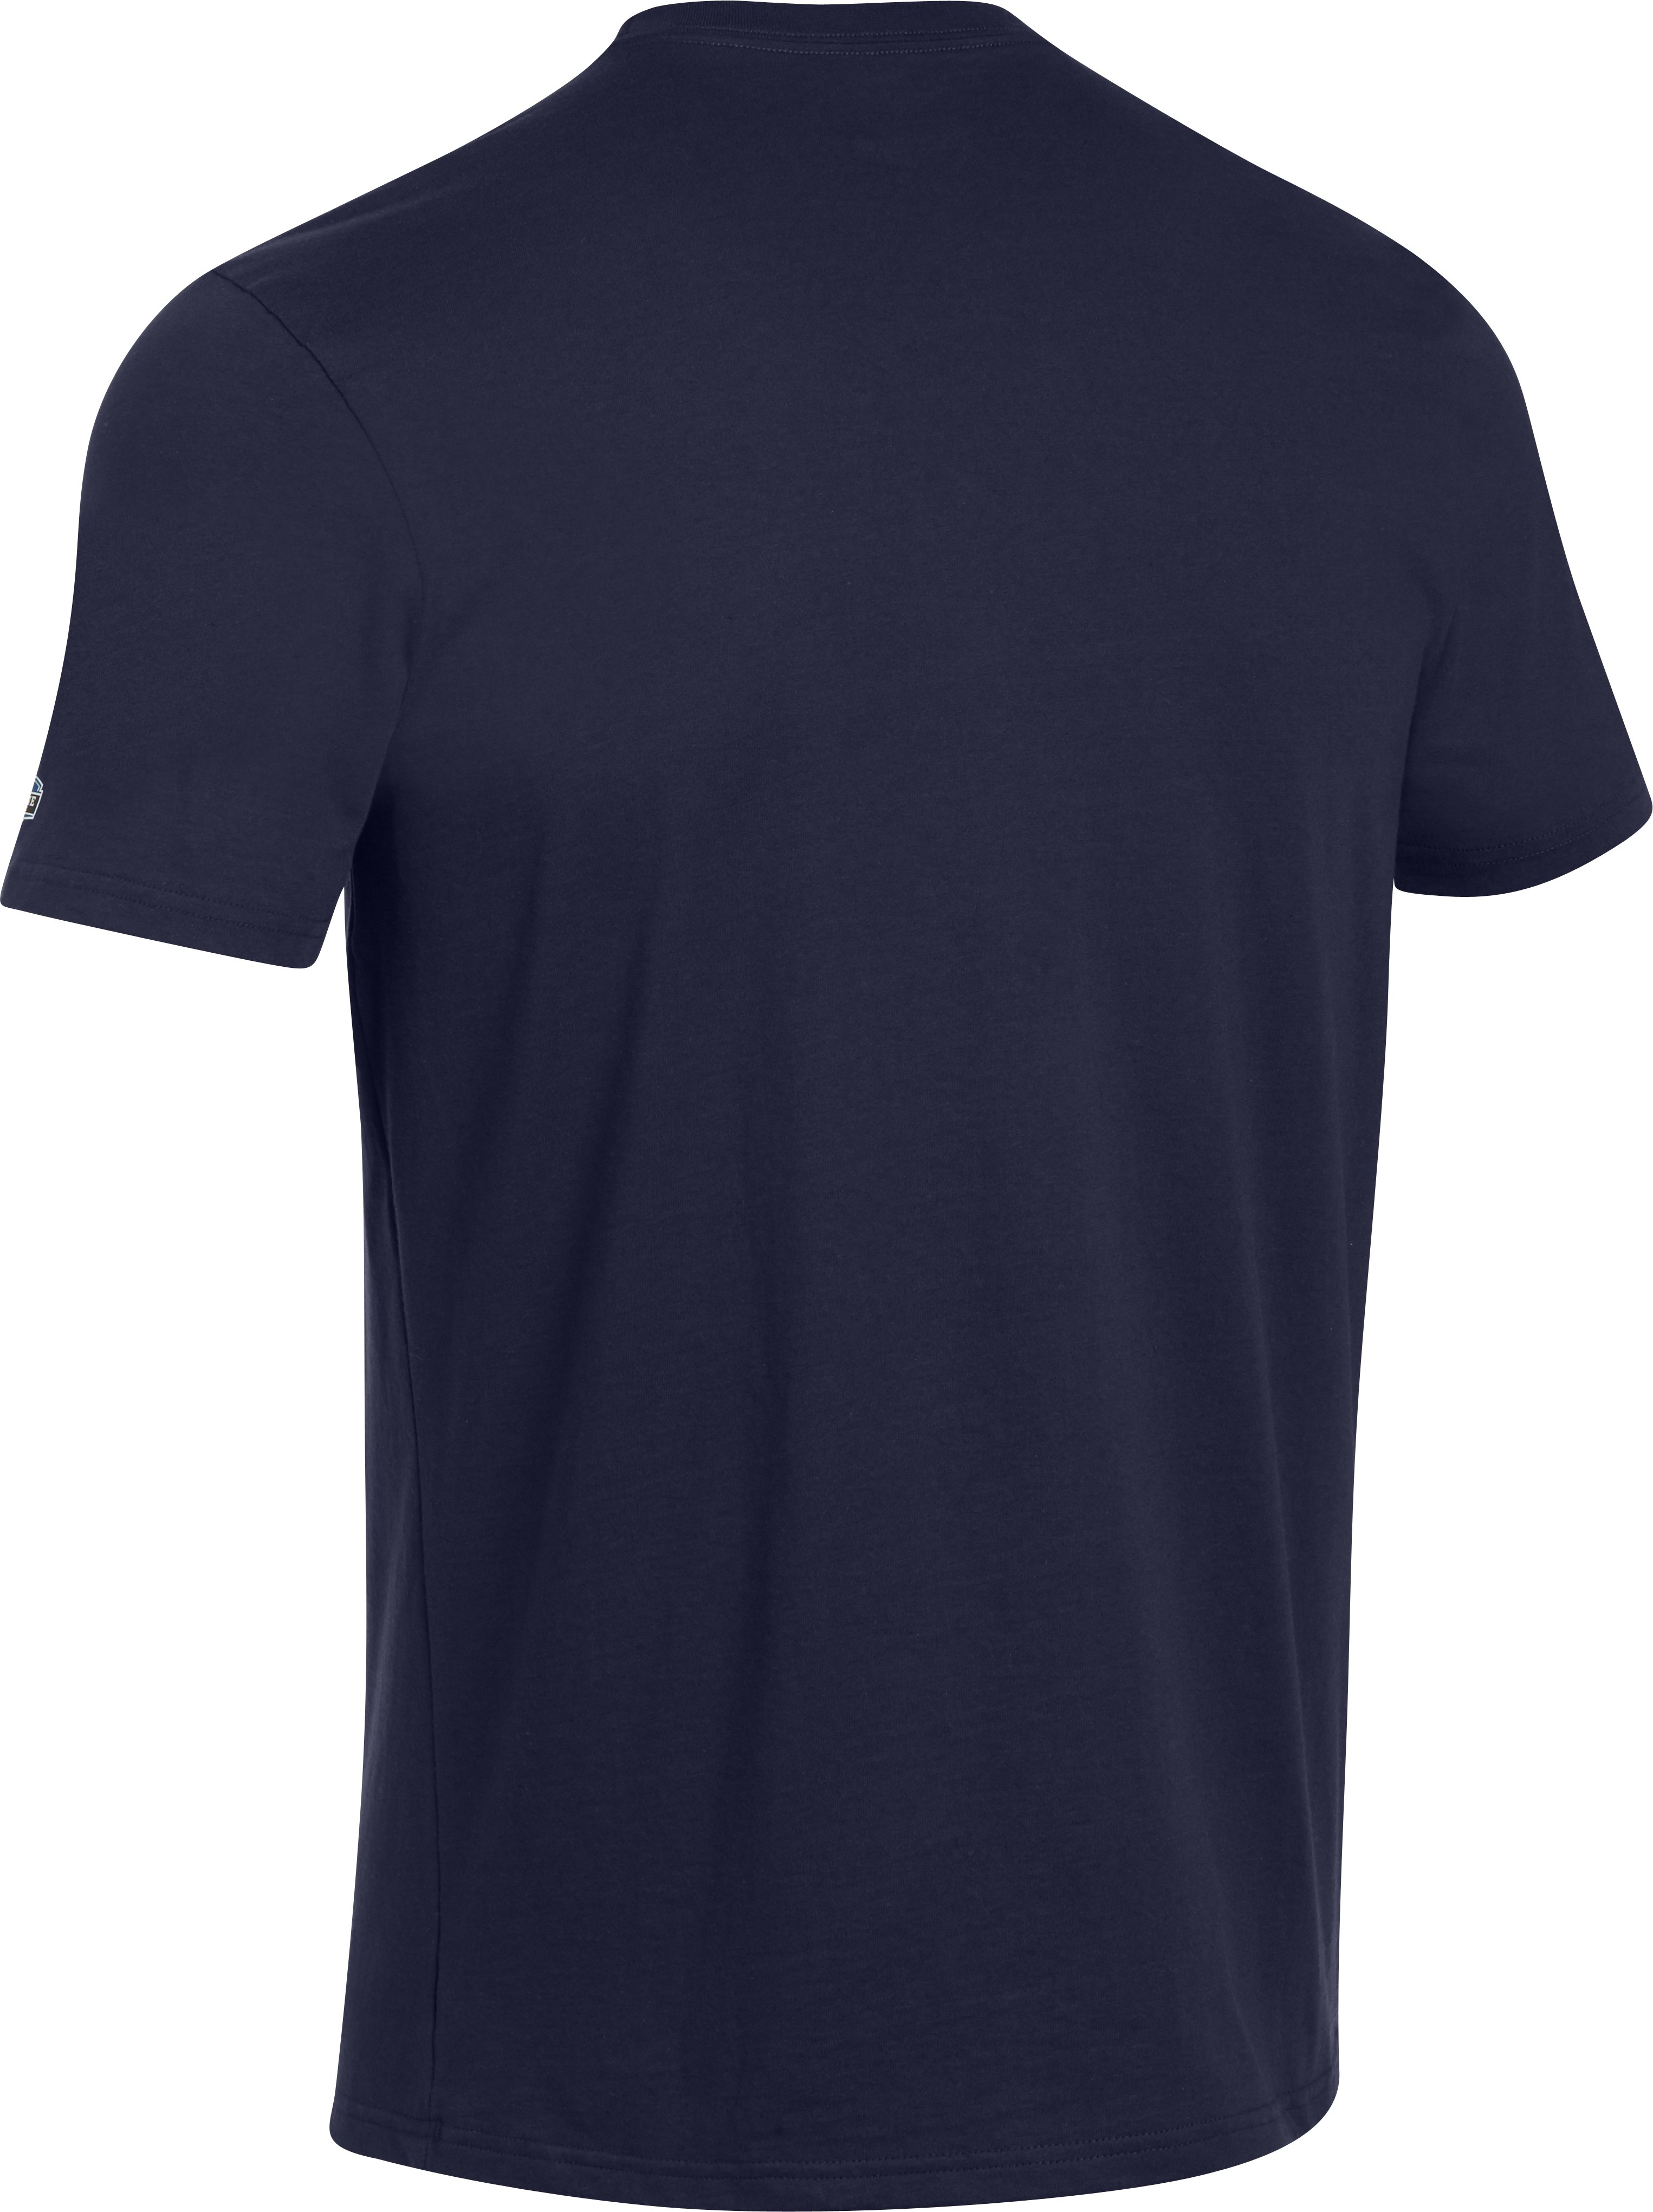 Men's NFL Combine Authentic Speed T-Shirt, Midnight Navy